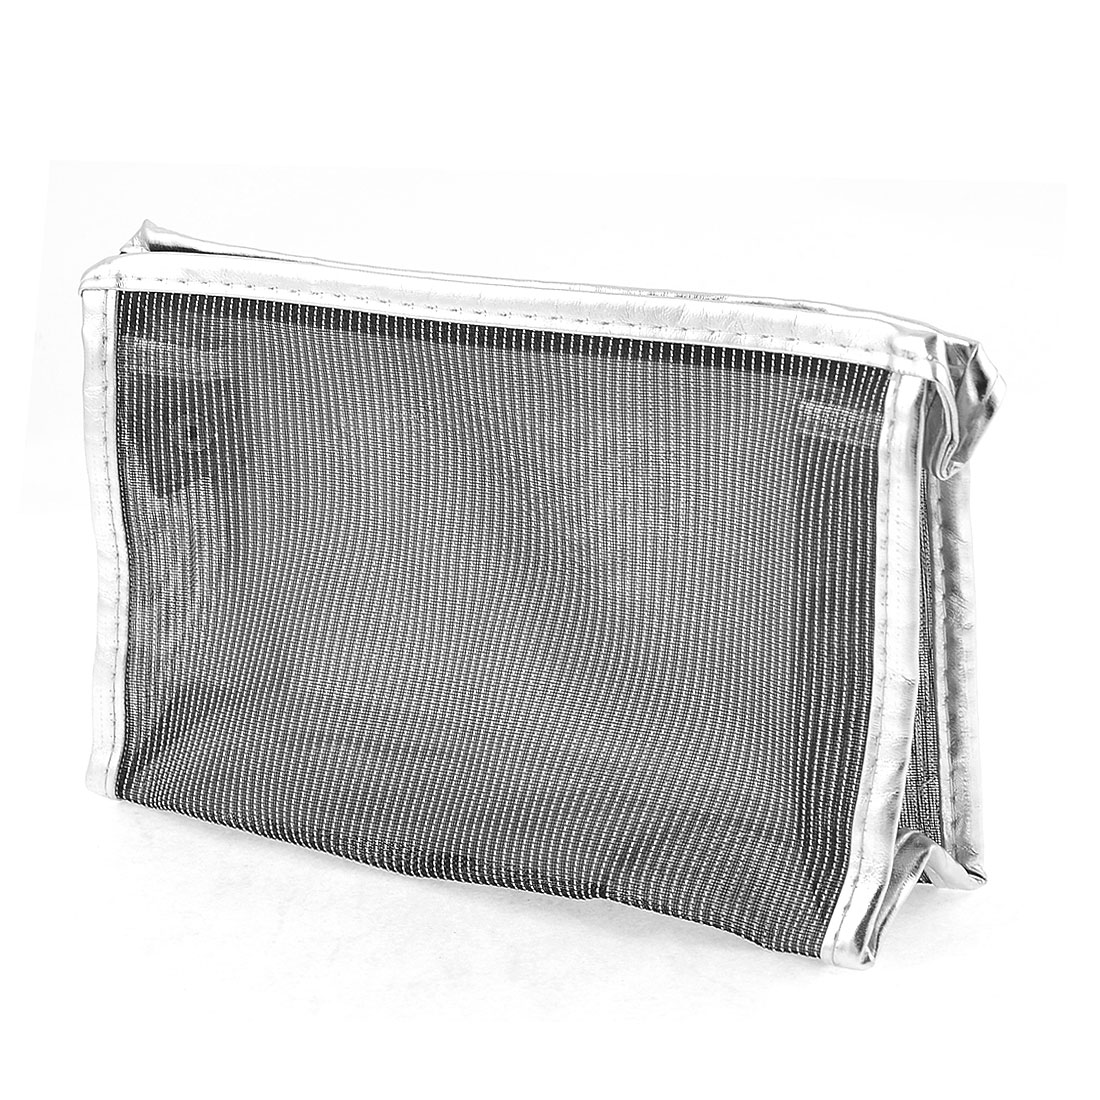 Silver Tone Black Mesh Clear Plastic Lining Waterproof Cosmetic Bag